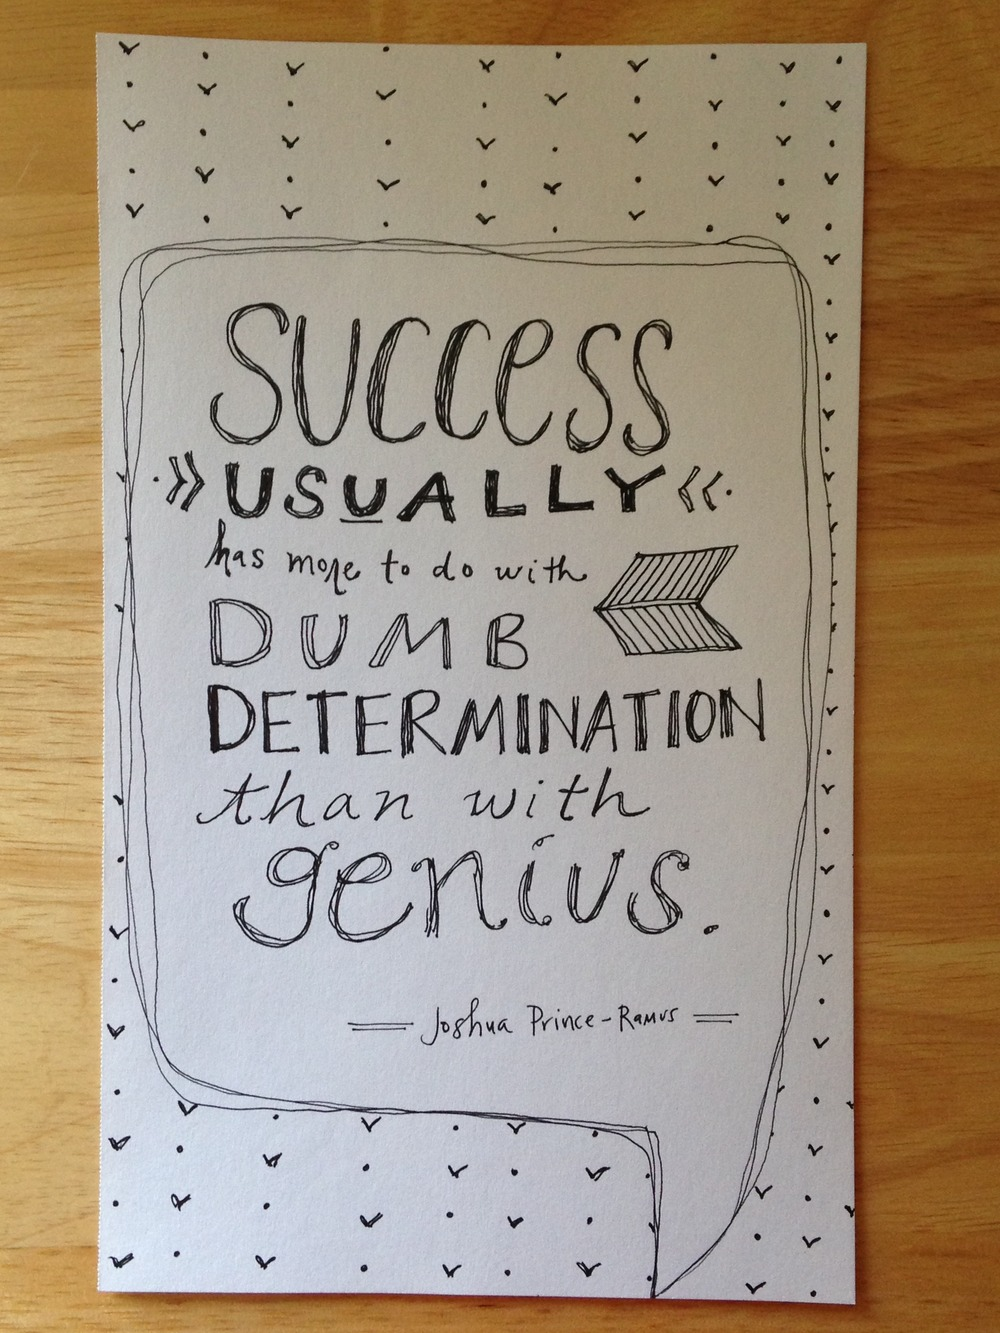 Success is more linked to determination than genius. That's a relief. | lucyflint.com